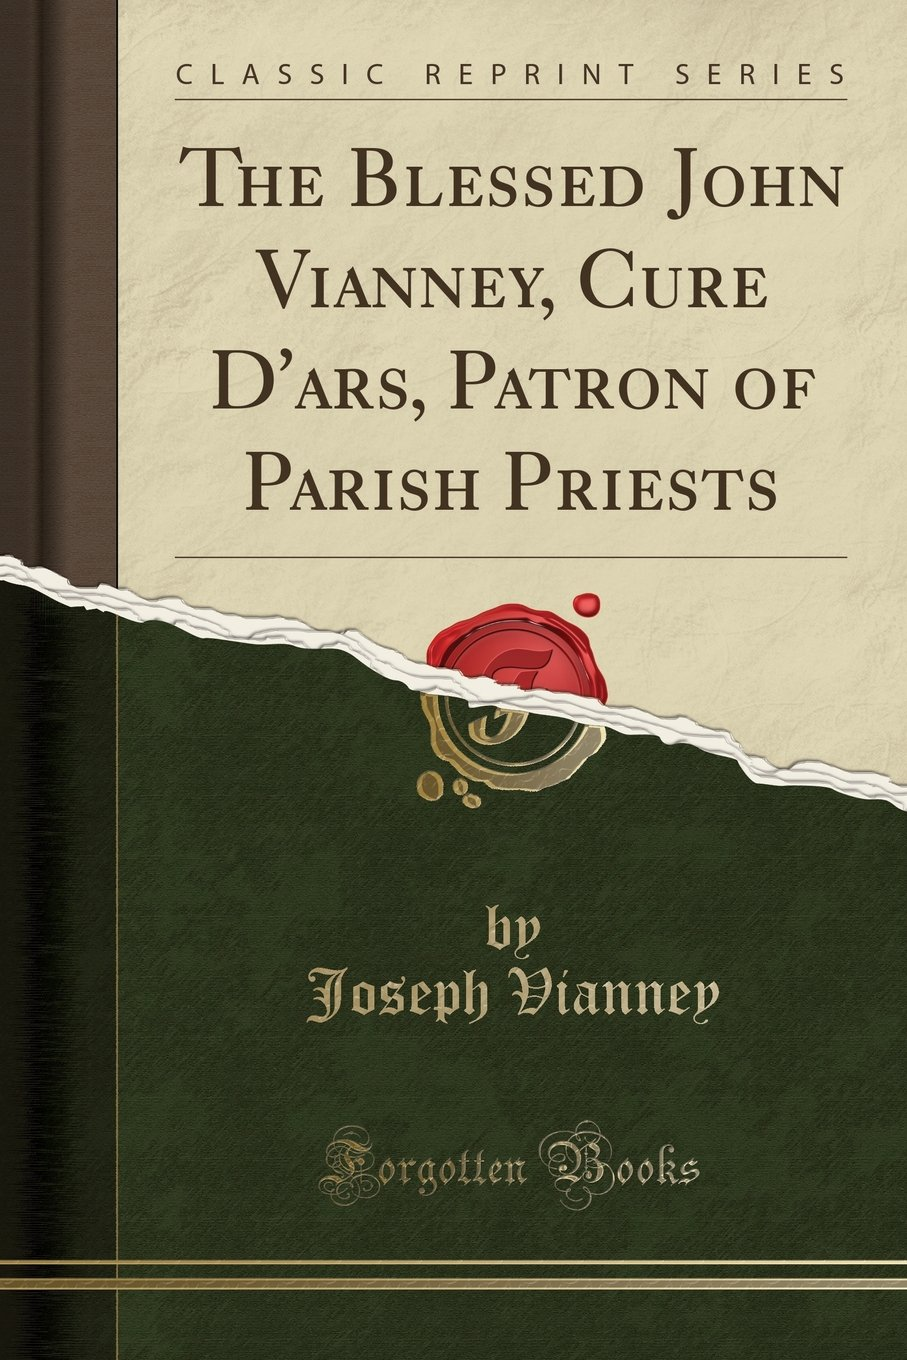 Download The Blessed John Vianney, Cure D'ars, Patron of Parish Priests (Classic Reprint) ebook